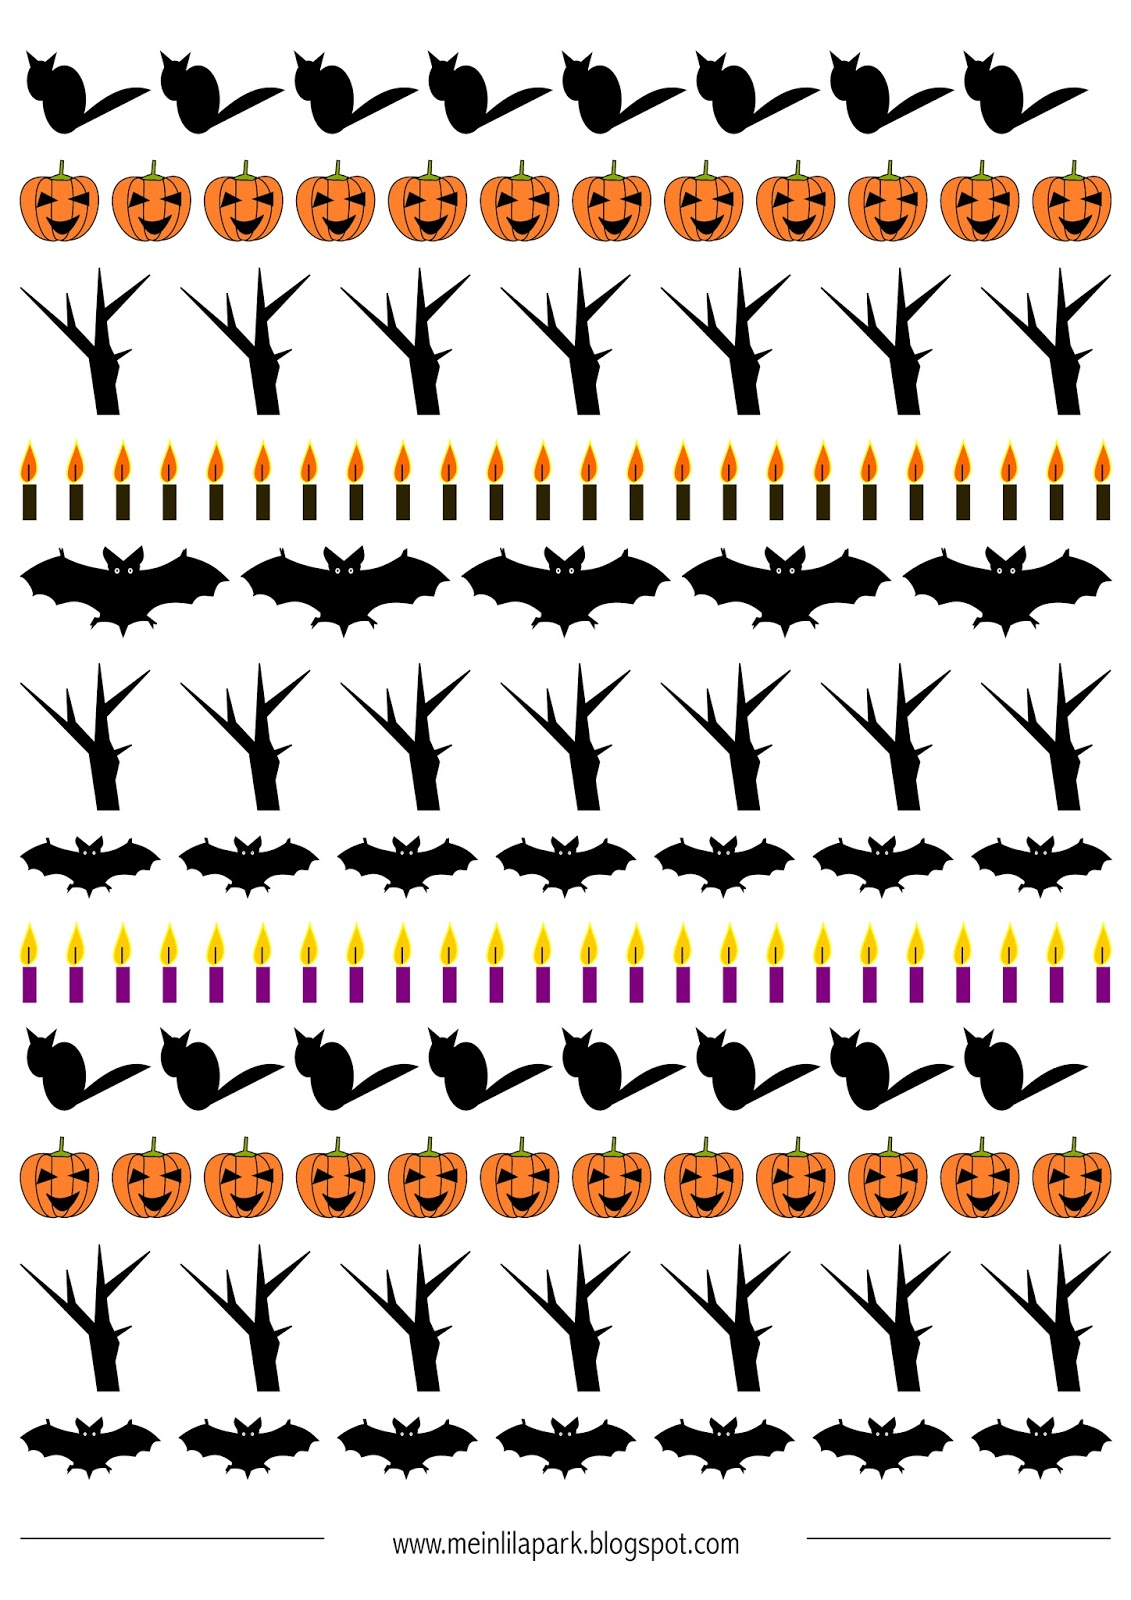 image regarding Free Printable Halloween Borders identify Cost-free printable Halloween borders - ausdruckbare Halloween